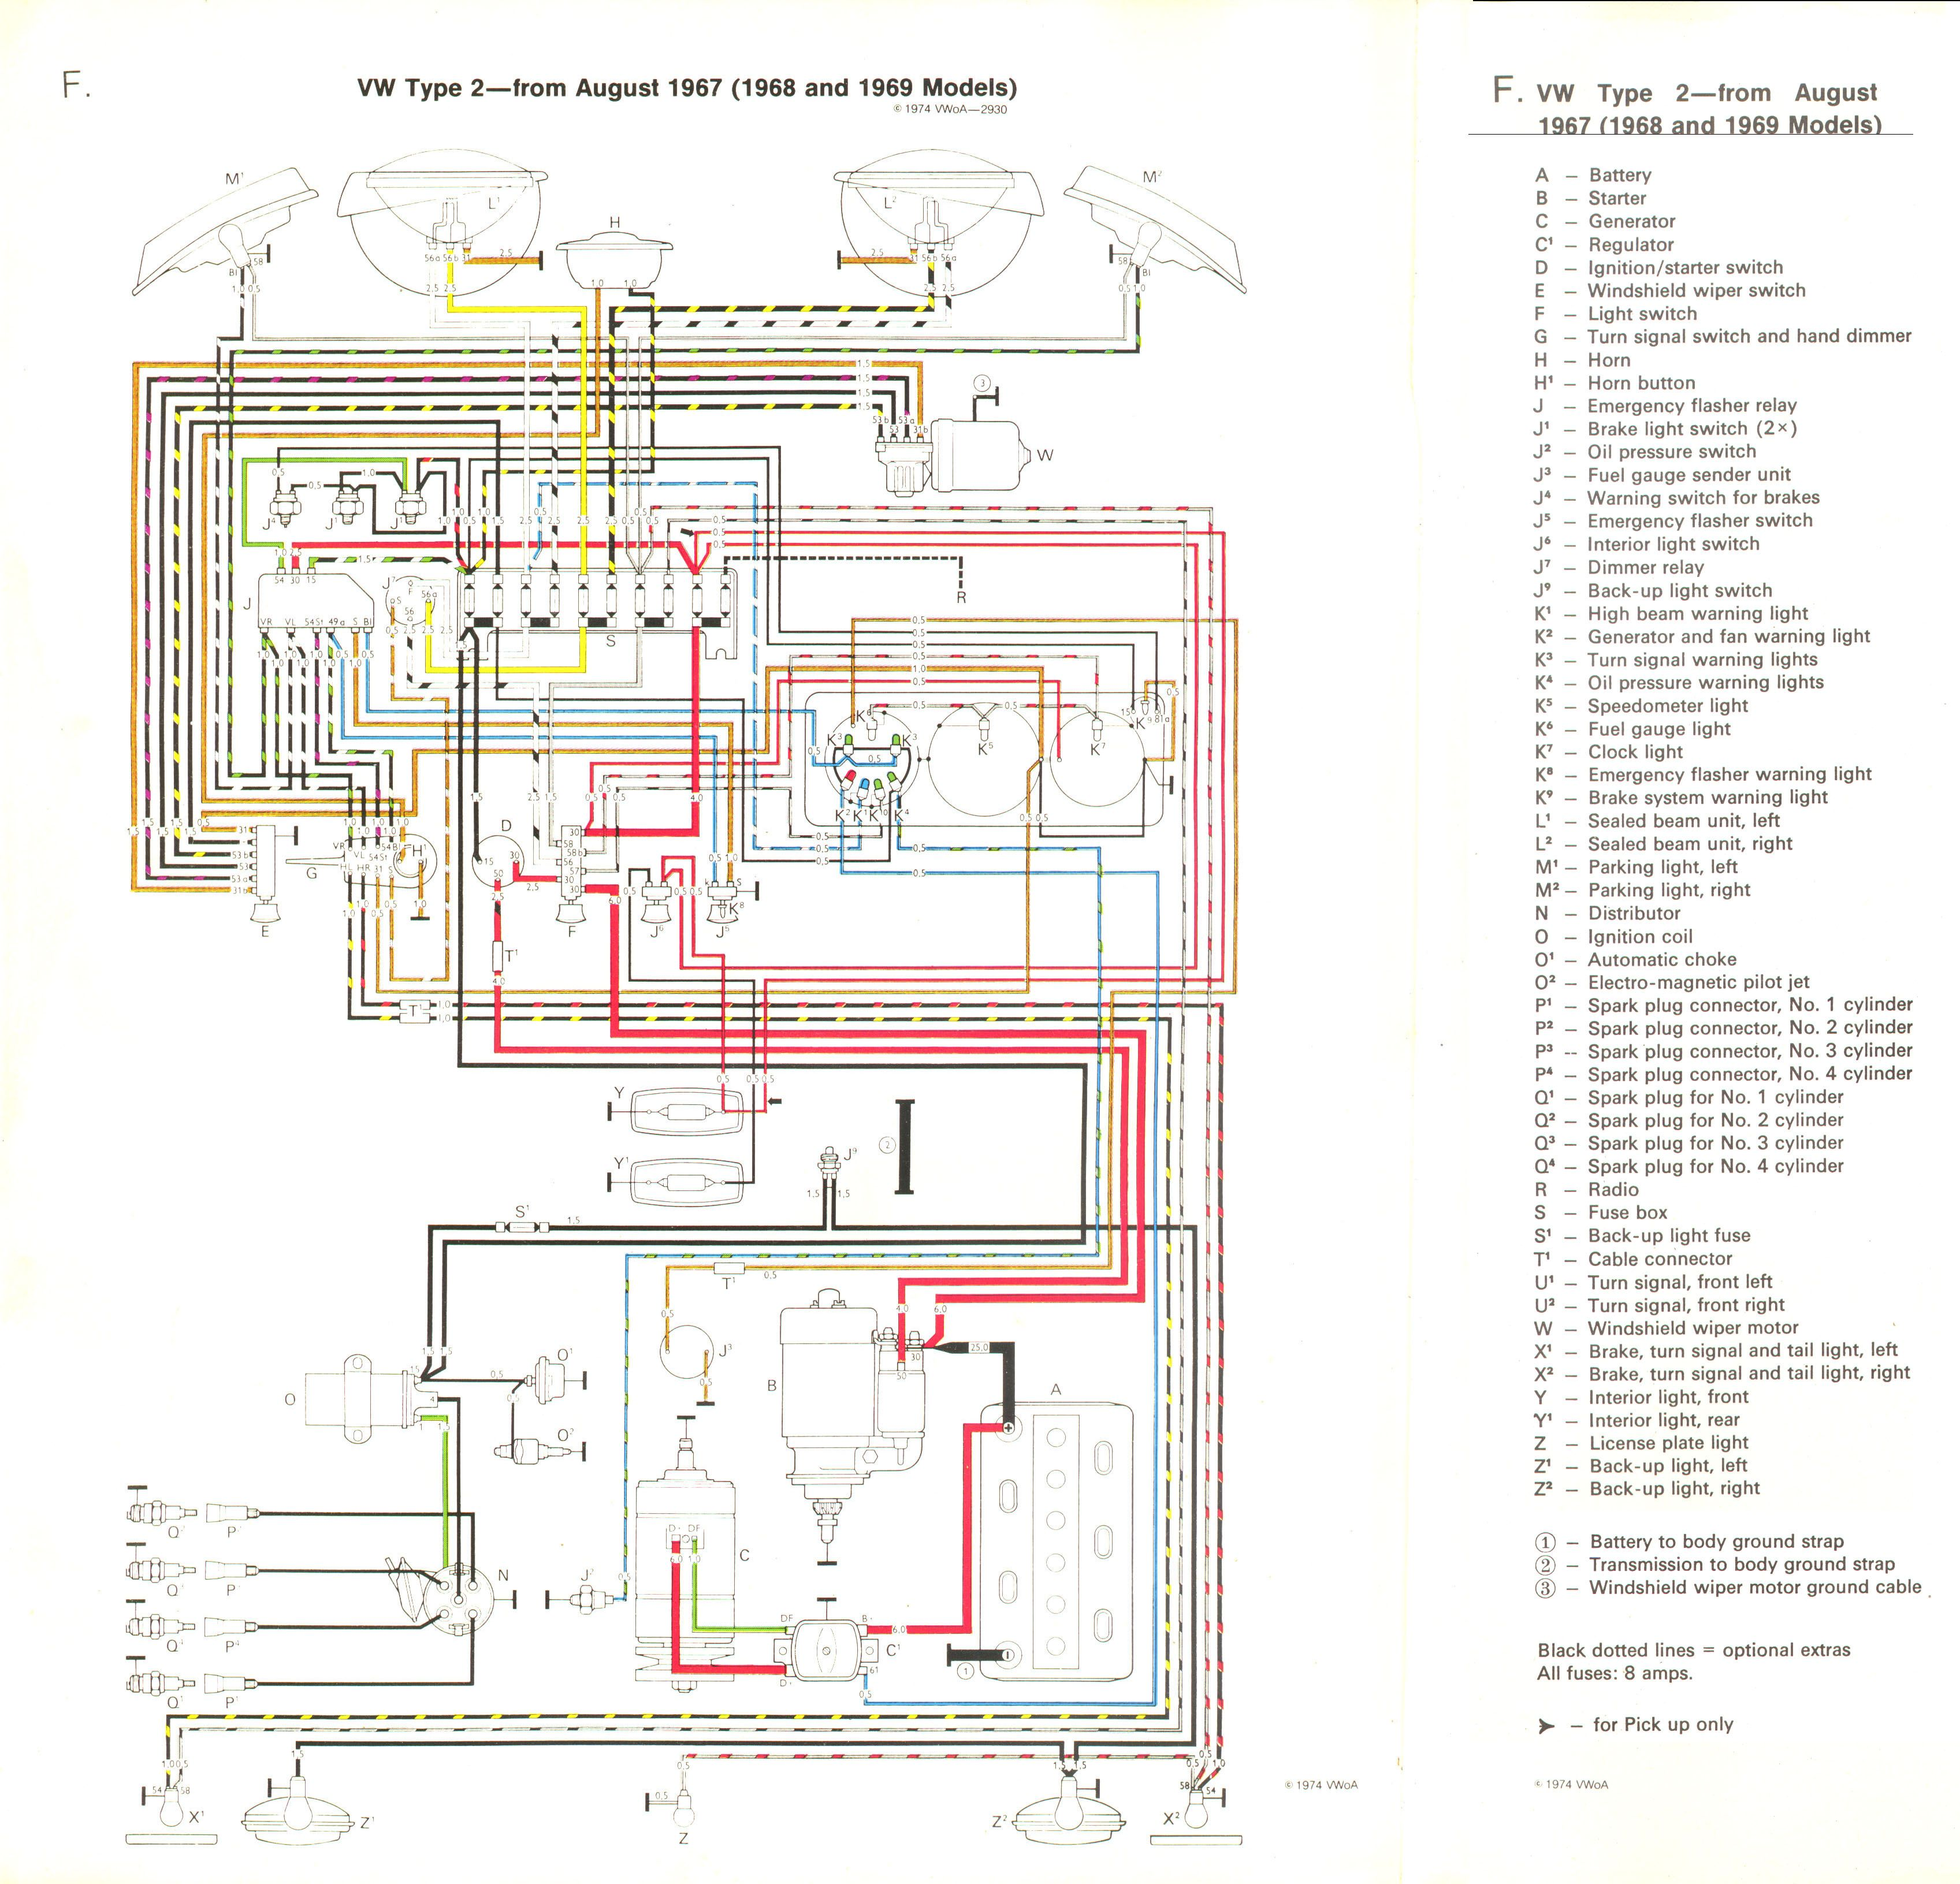 1978 vw bus wiring diagram ford focus mk1 baywindow fusebox layout august 1967 1968 and 1969 models